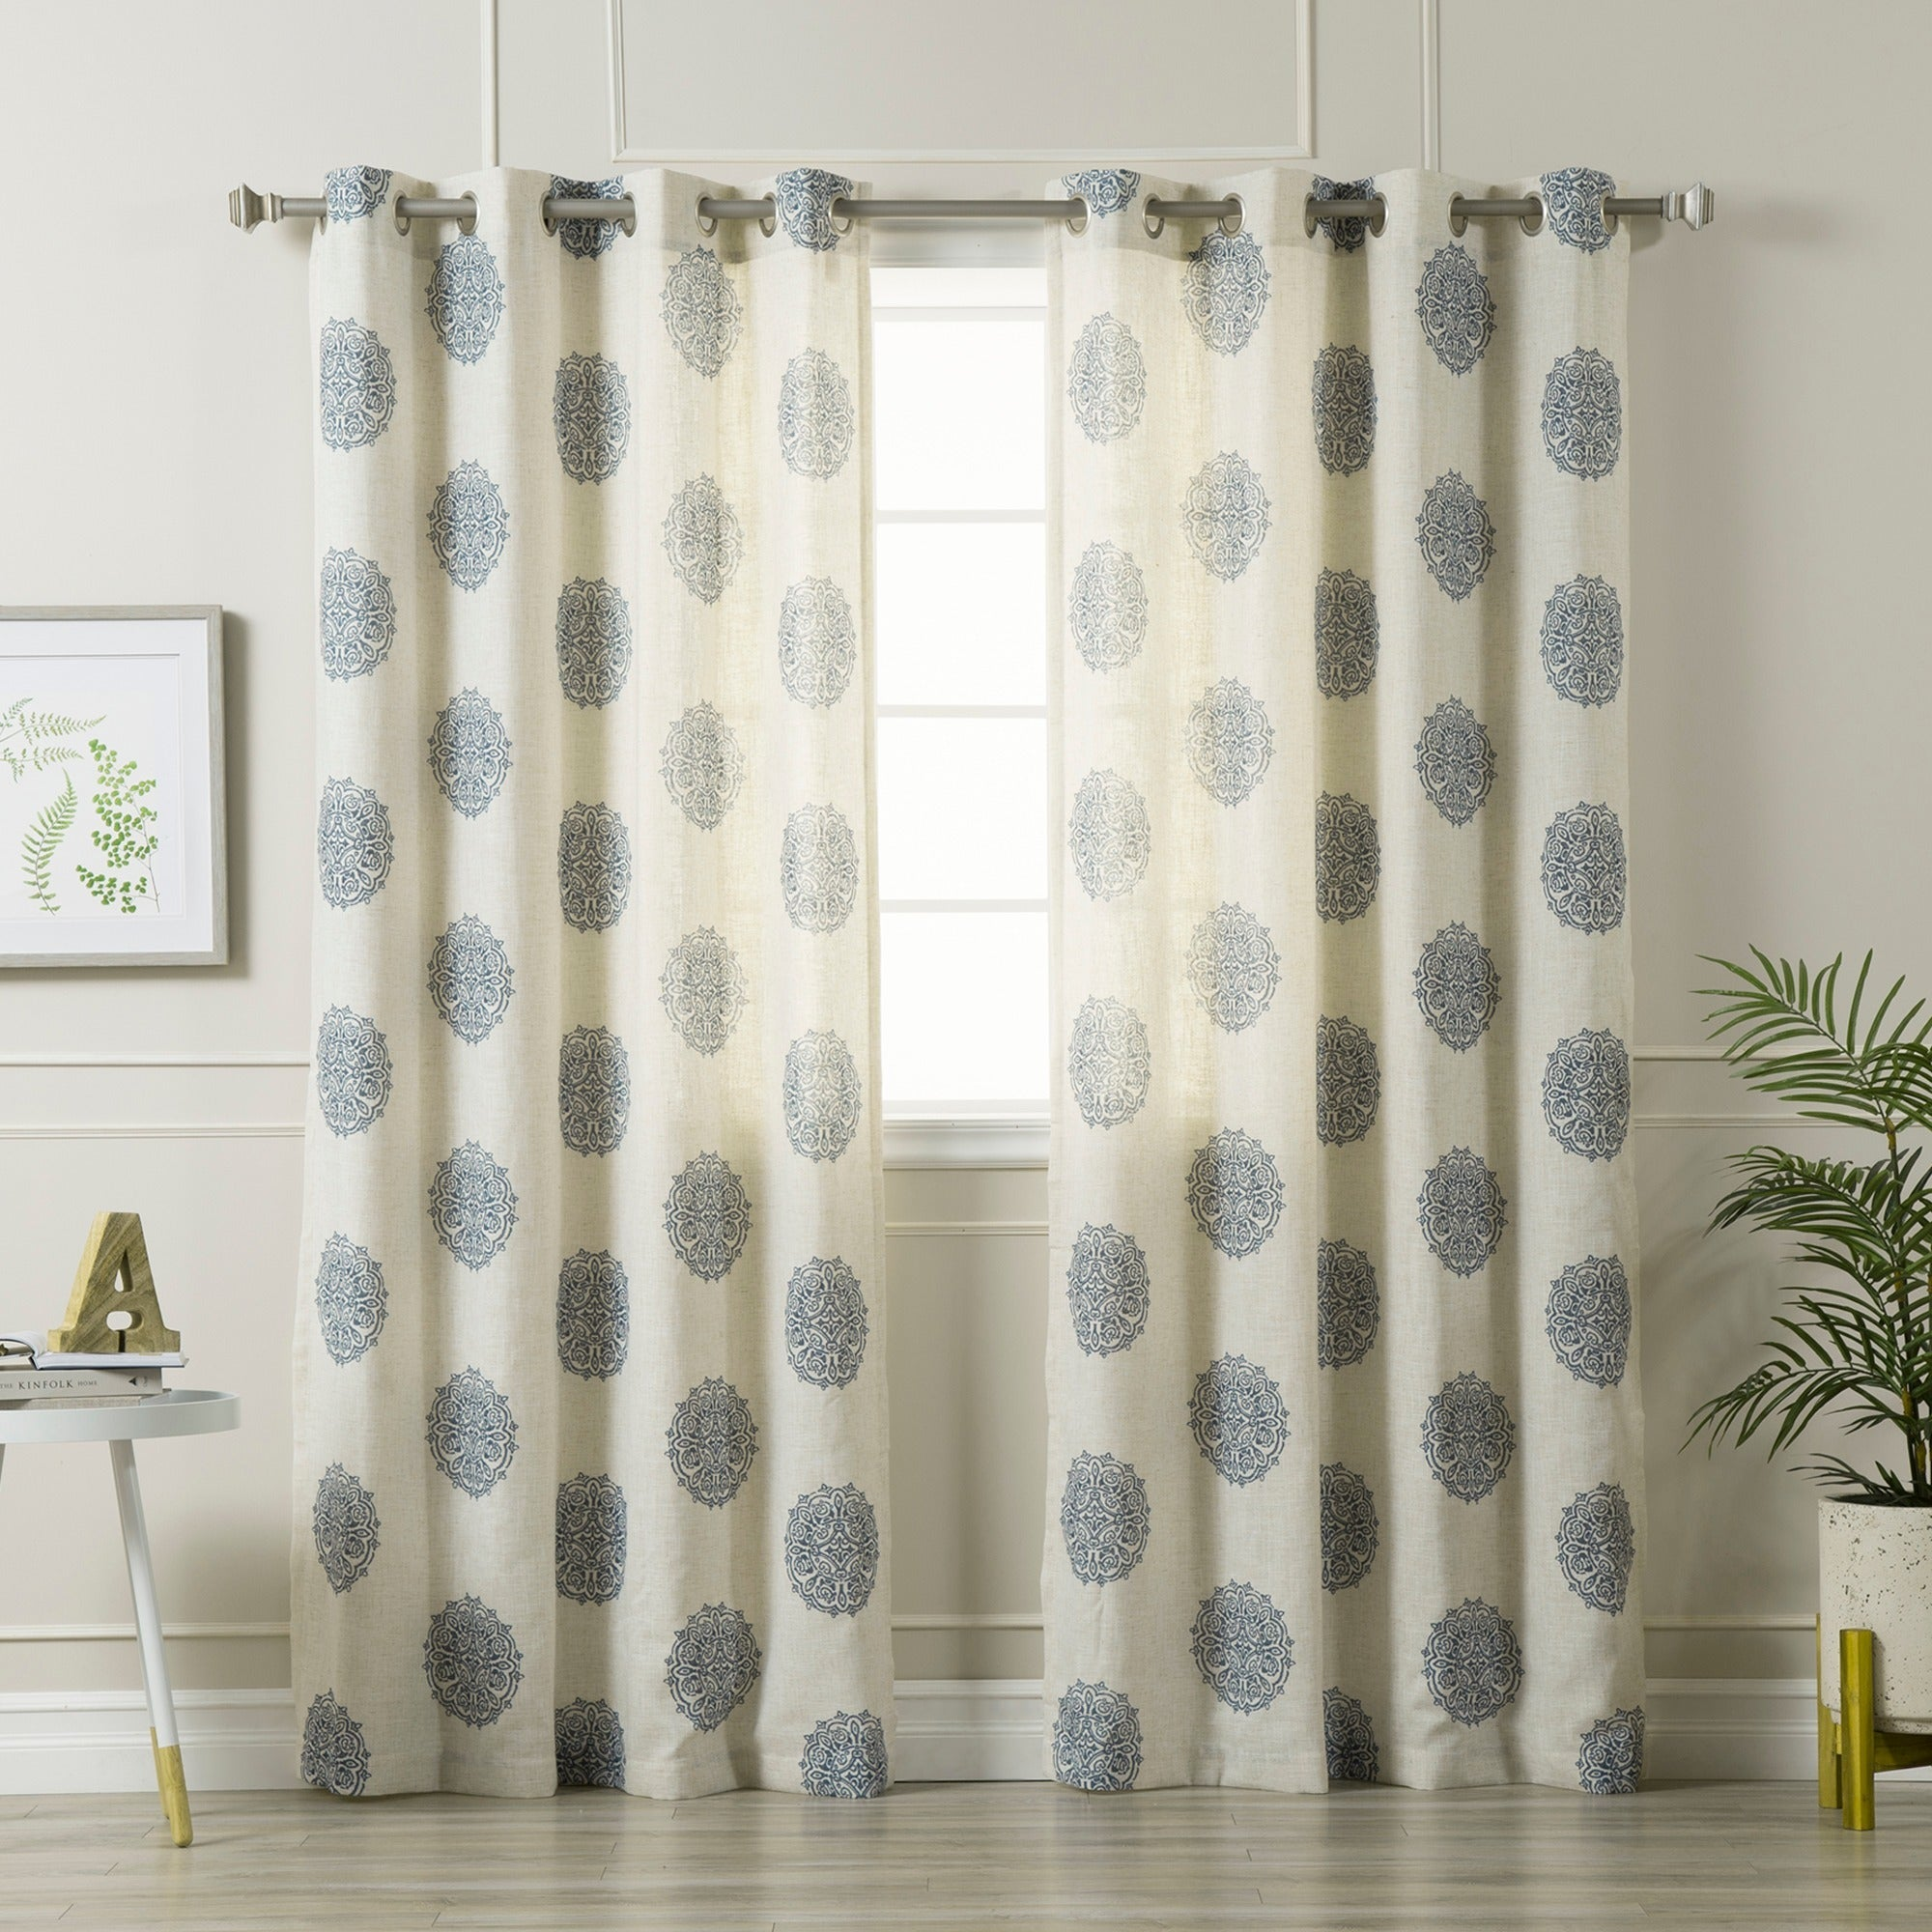 curtains window single inspiration rods fashions harper ideas lovely amp shower reviews rod home design elrene panel inch curtain of